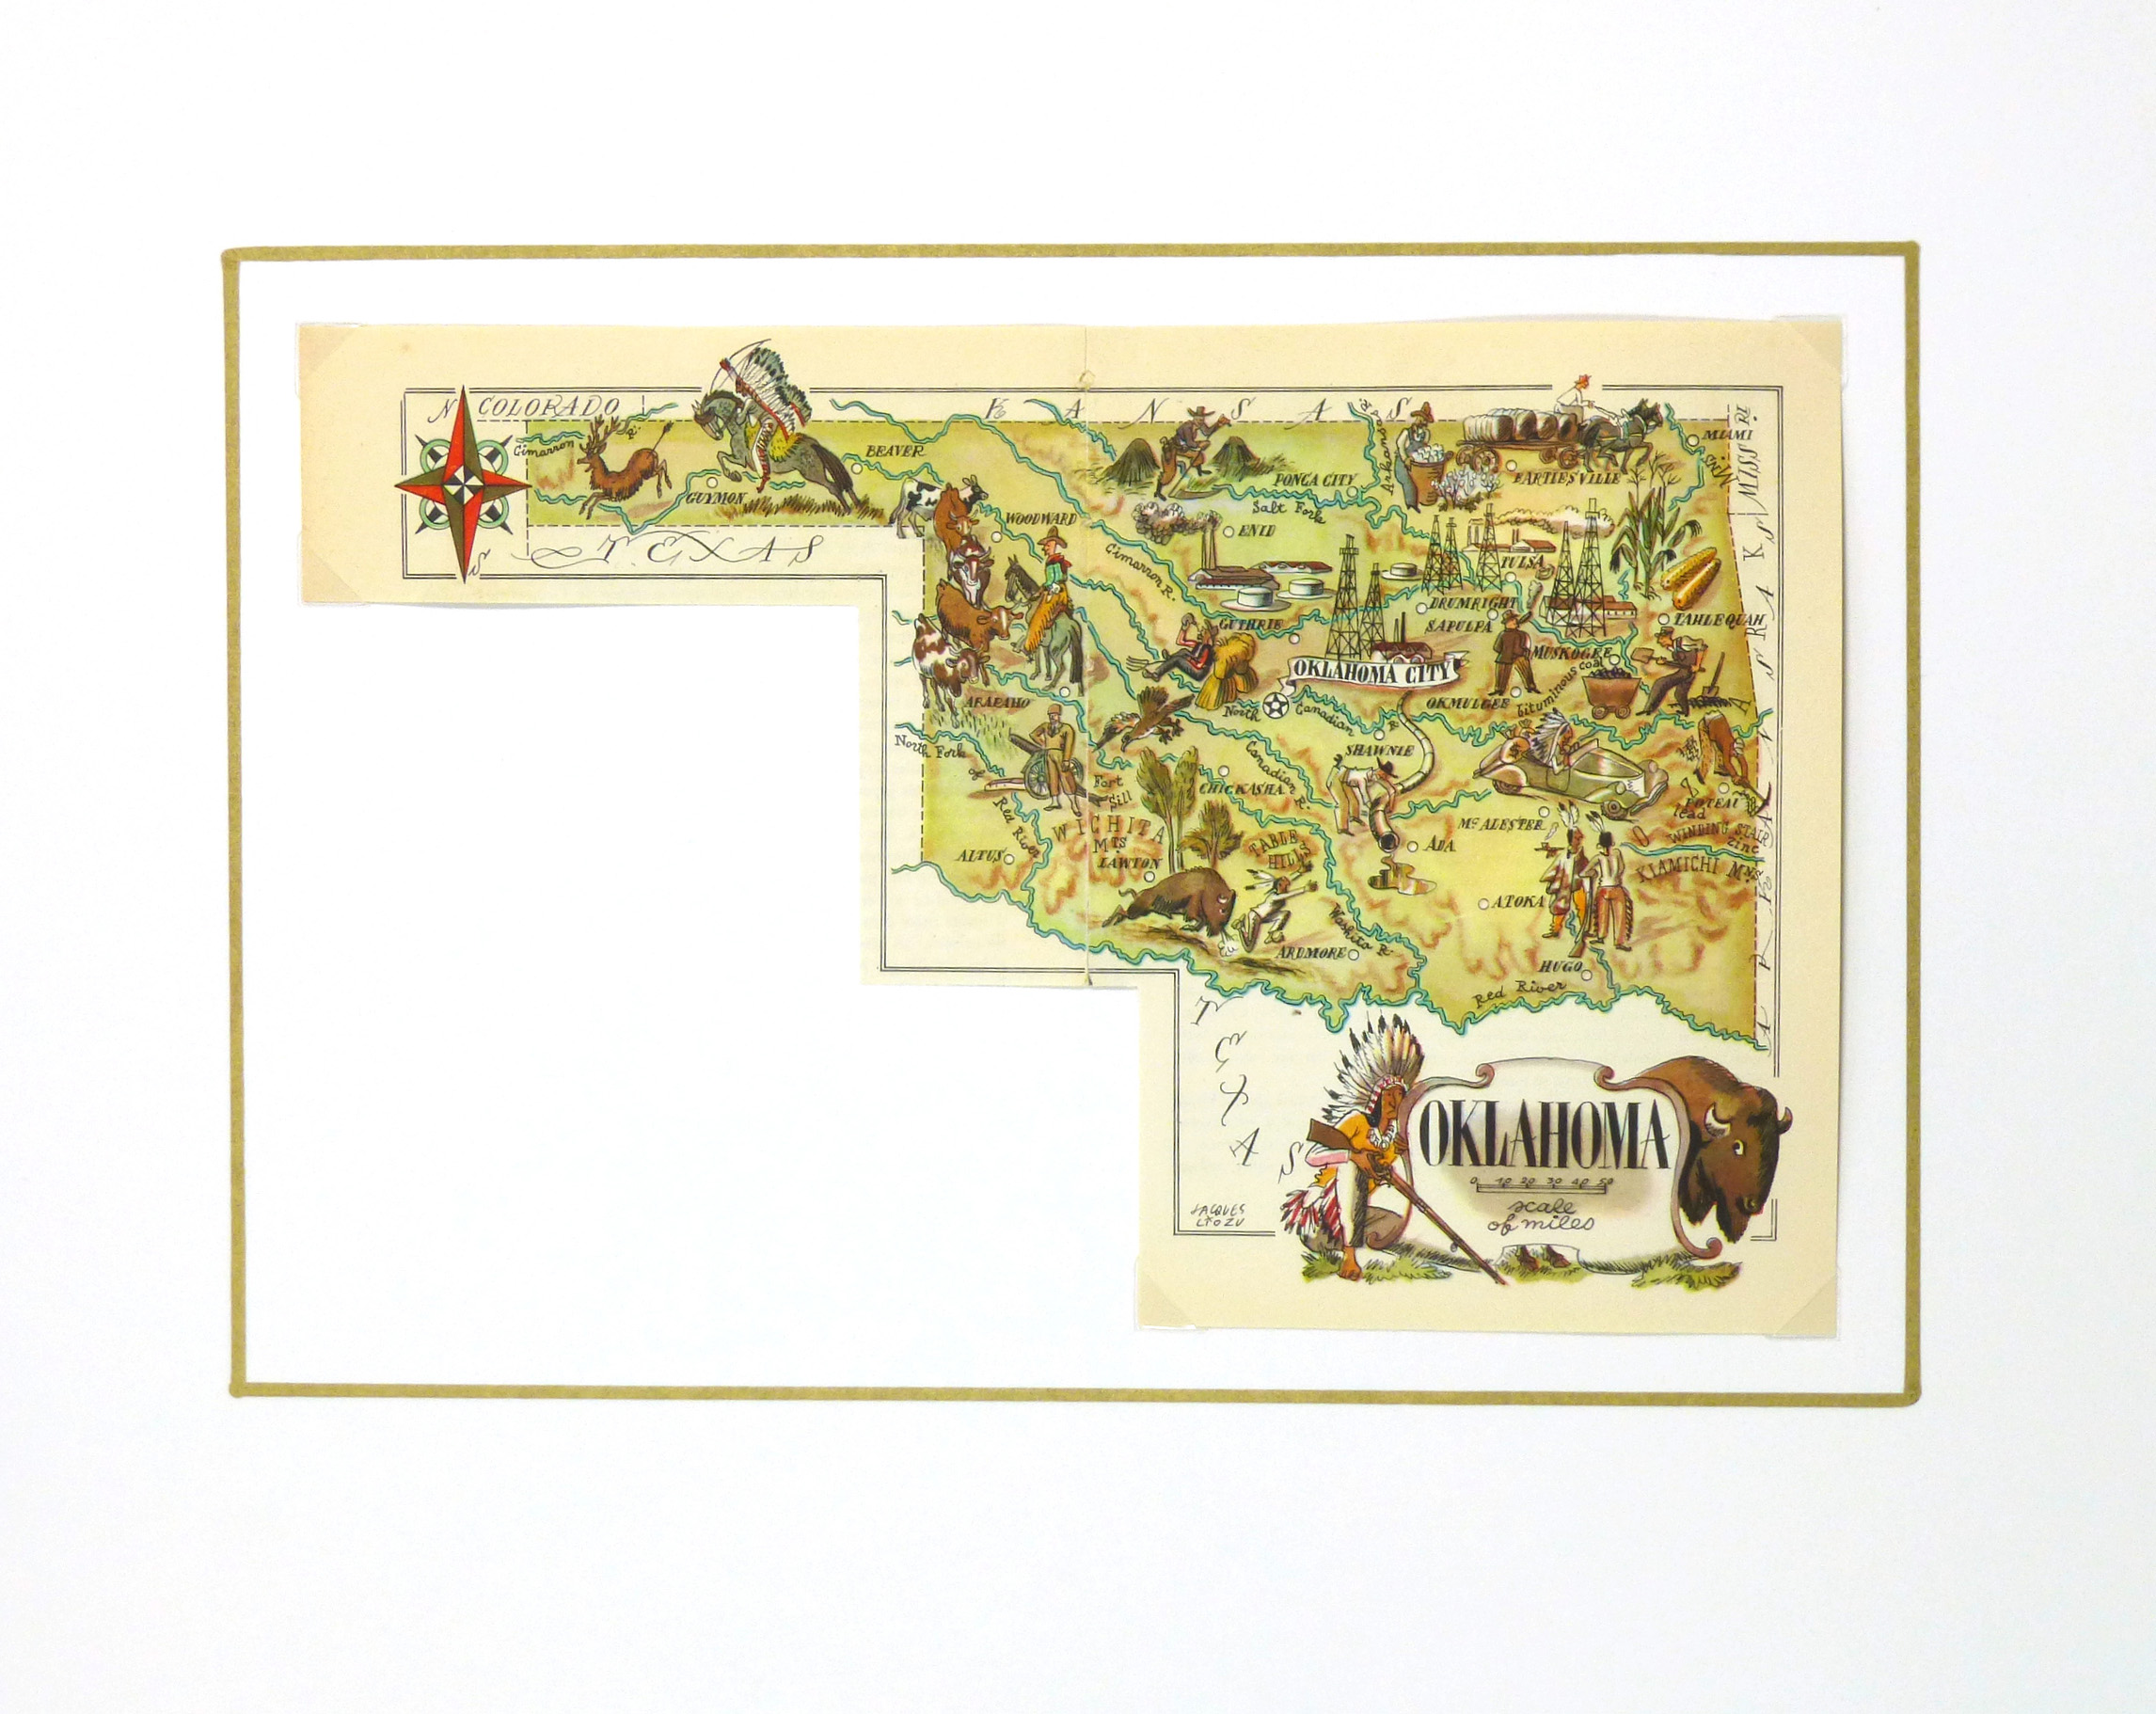 Oklahoma Pictorial Map, 1946-matted-6264K